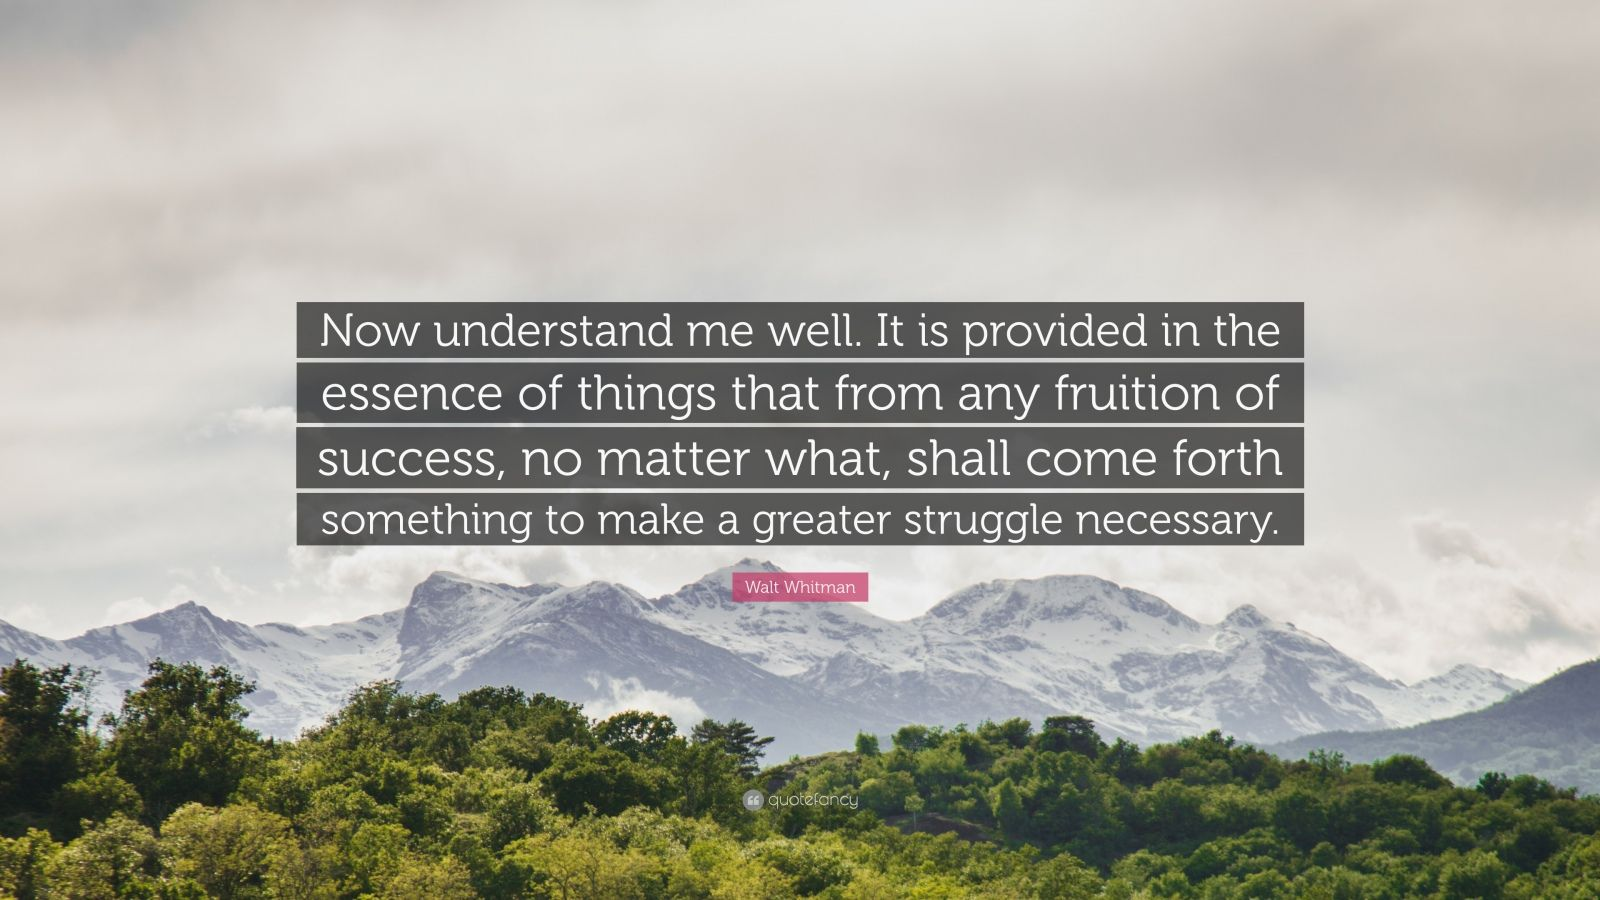 """Walt Whitman Quote: """"Now understand me well. It is provided in the essence of things that from any fruition of success, no matter what, shall come forth something to make a greater struggle necessary."""""""